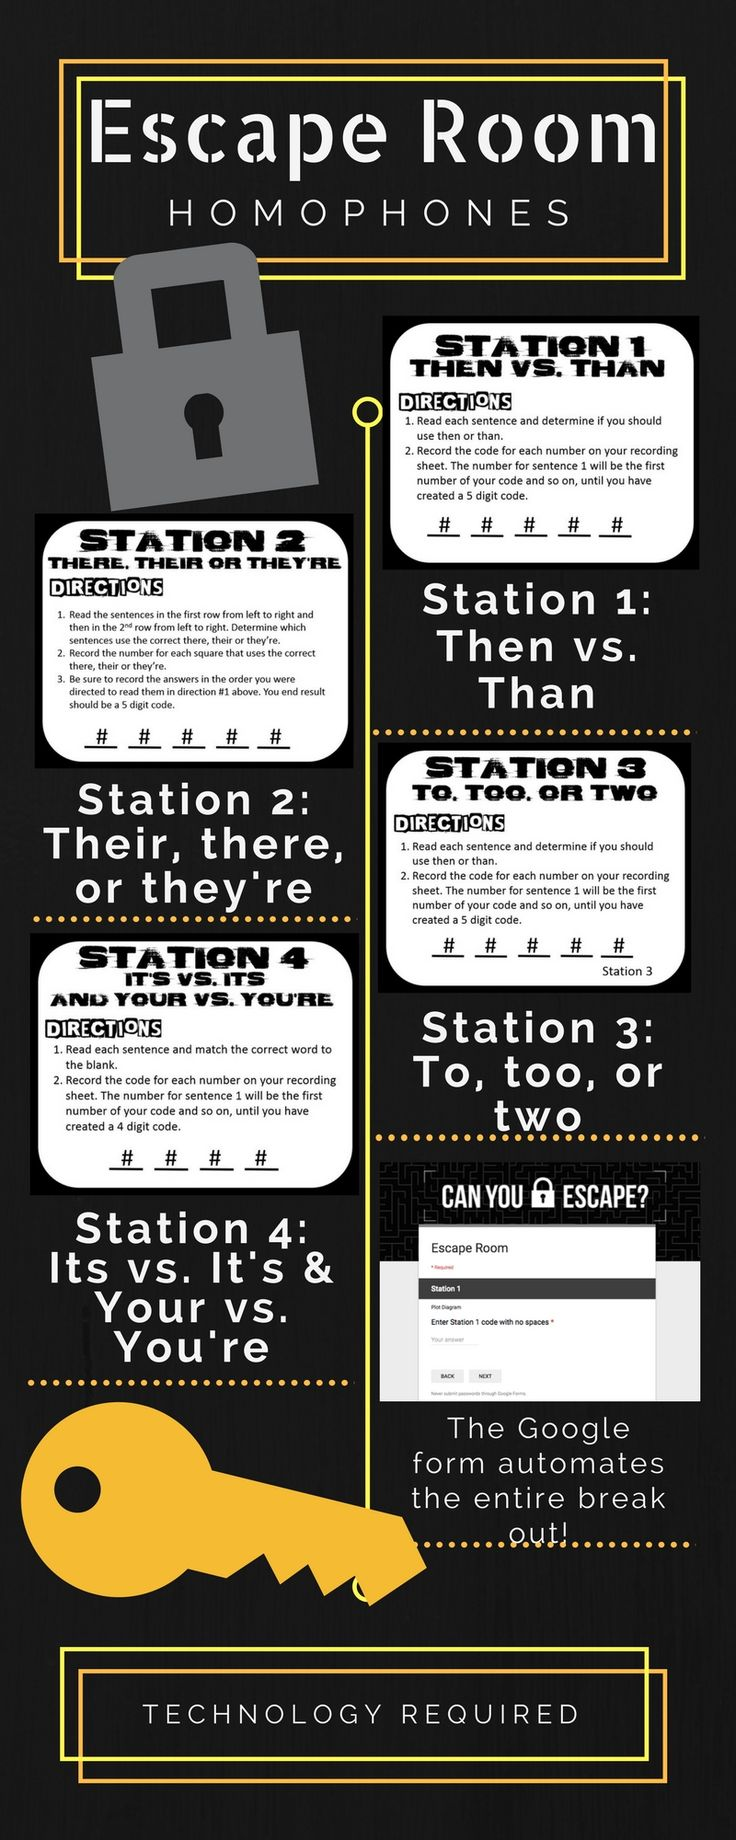 This Hompphones Escape room is great for beginning of the year review and pre-assessment. It is also great for the end of the year review before and after state tests. Students will need to access a google form, so ANY technology that allows them to access and complete a google form will work! There are 4 stations they must complete to escape.